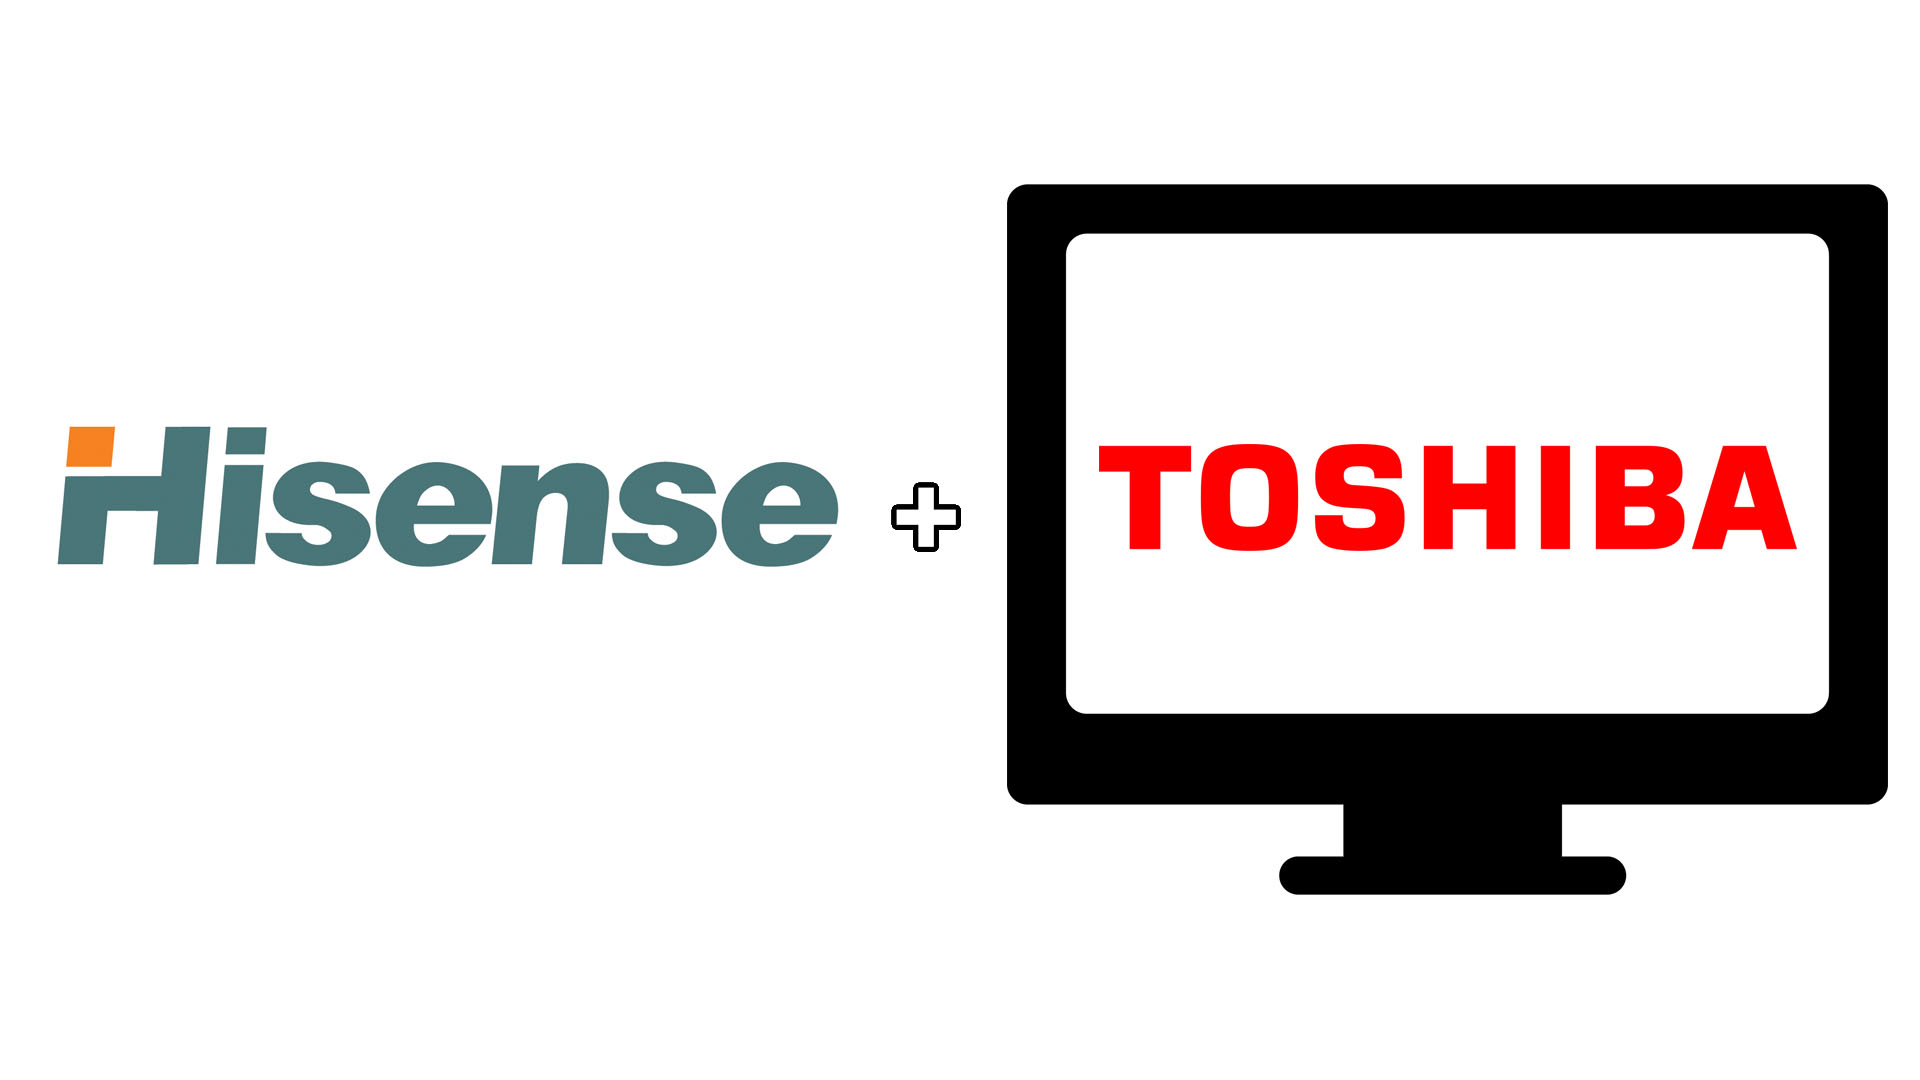 a comparison between the panasonic and toshiba television The standard cable channels or standard over-the-air (ota) channels often  appear fuzzy or blurry on your lcd tv because of a mismatch.